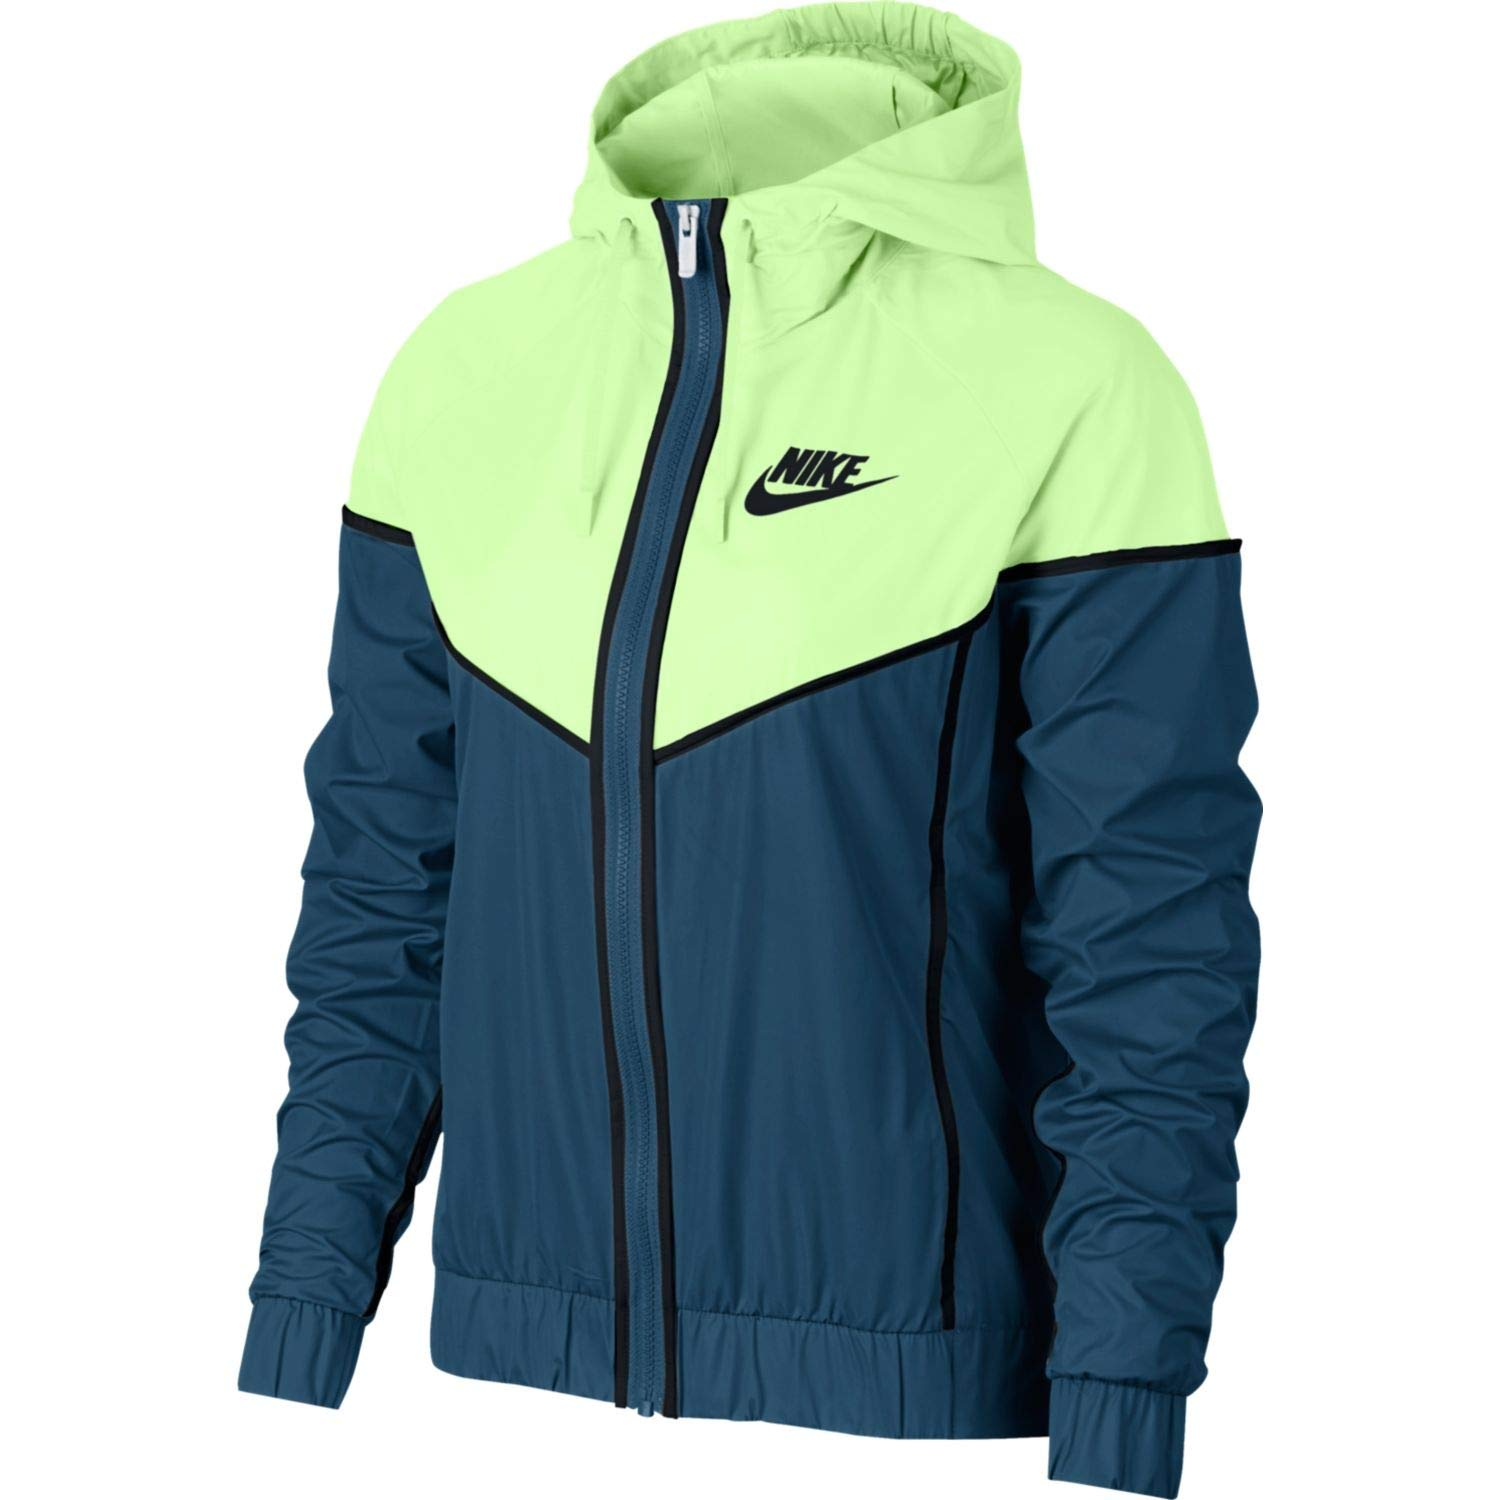 Nike Womens Windrunner Track Jacket Blue Force/Barley Volt/Black 883495-476 Size X-Small by Nike (Image #1)